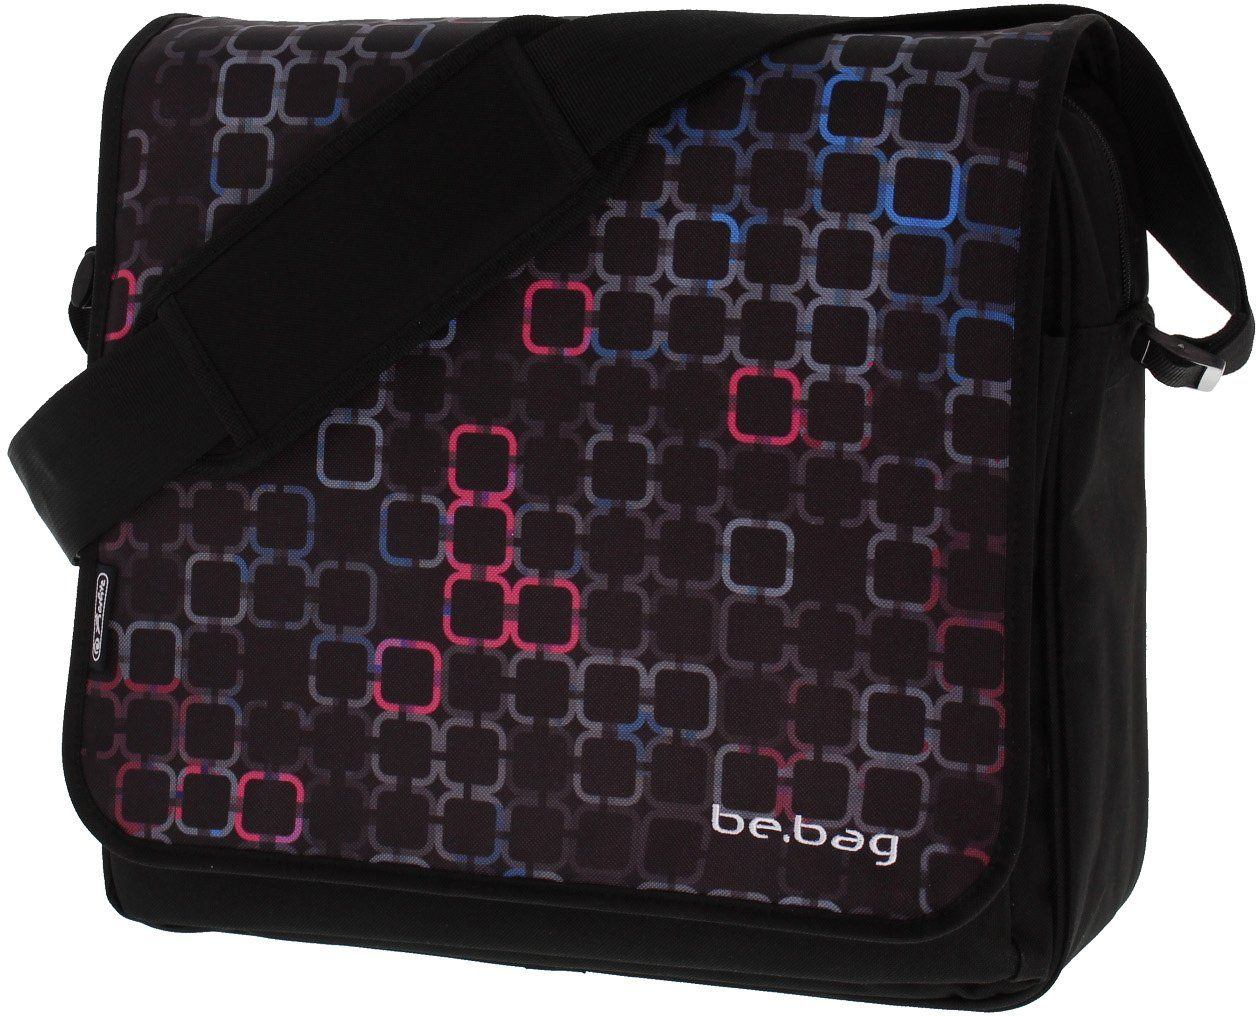 Herlitz Umhängetasche mit Laptopfach, »be.bag Messenger, Bag Squares«